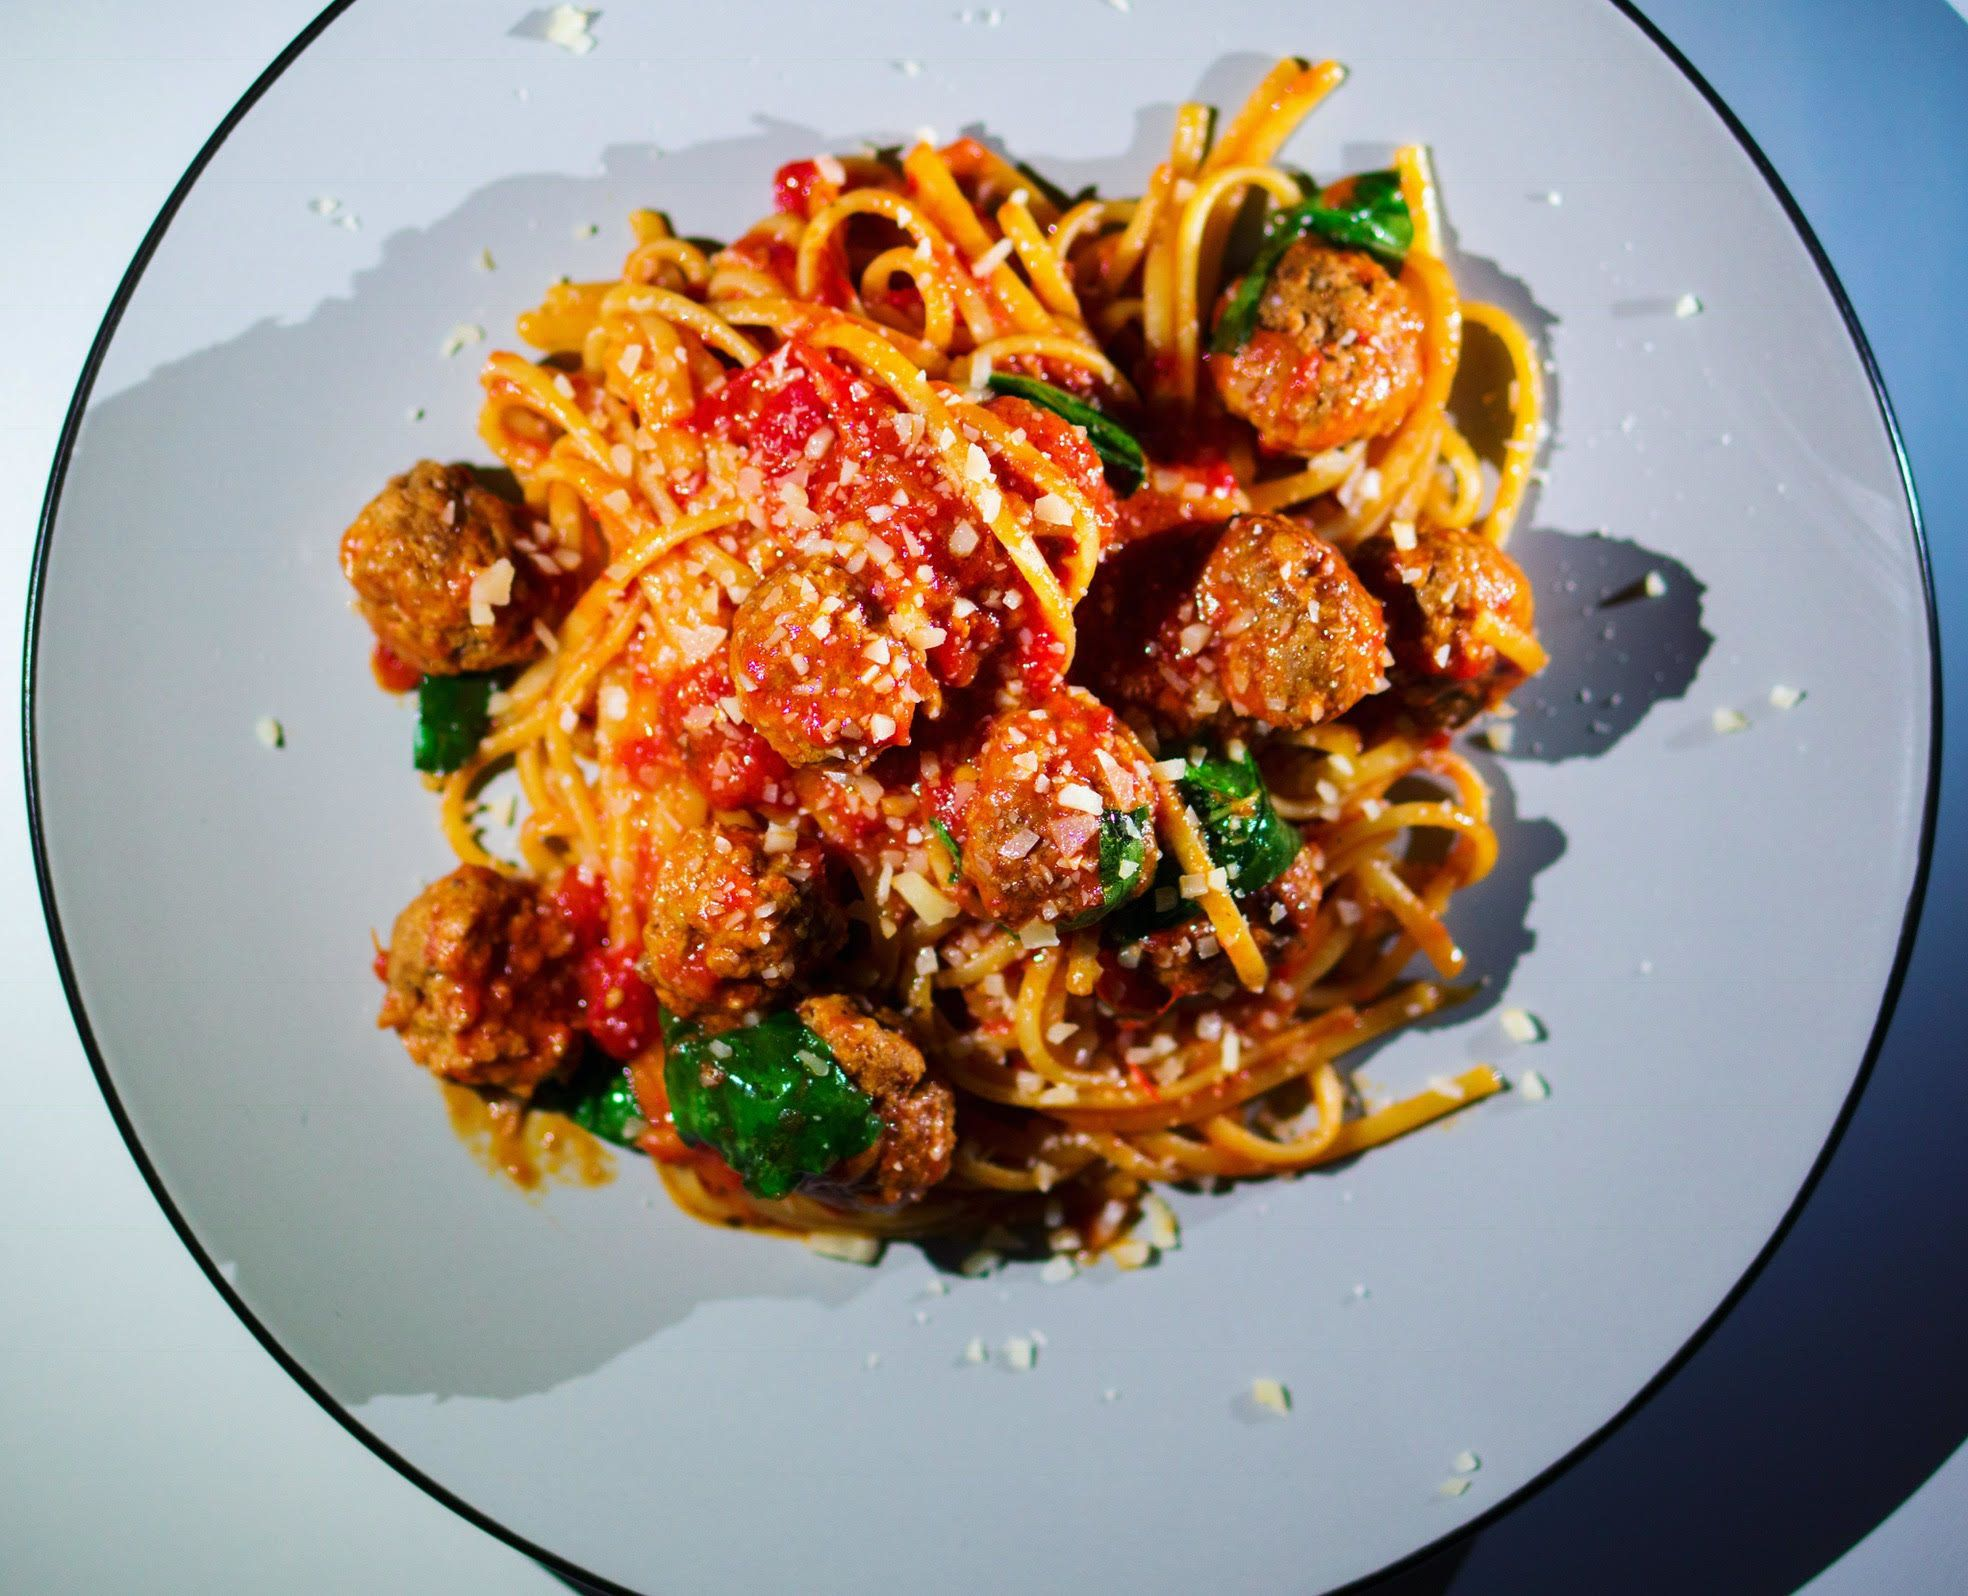 Despite what everyone says, spaghetti and meatballs have existednot only in theU.S.but also inItaly&r